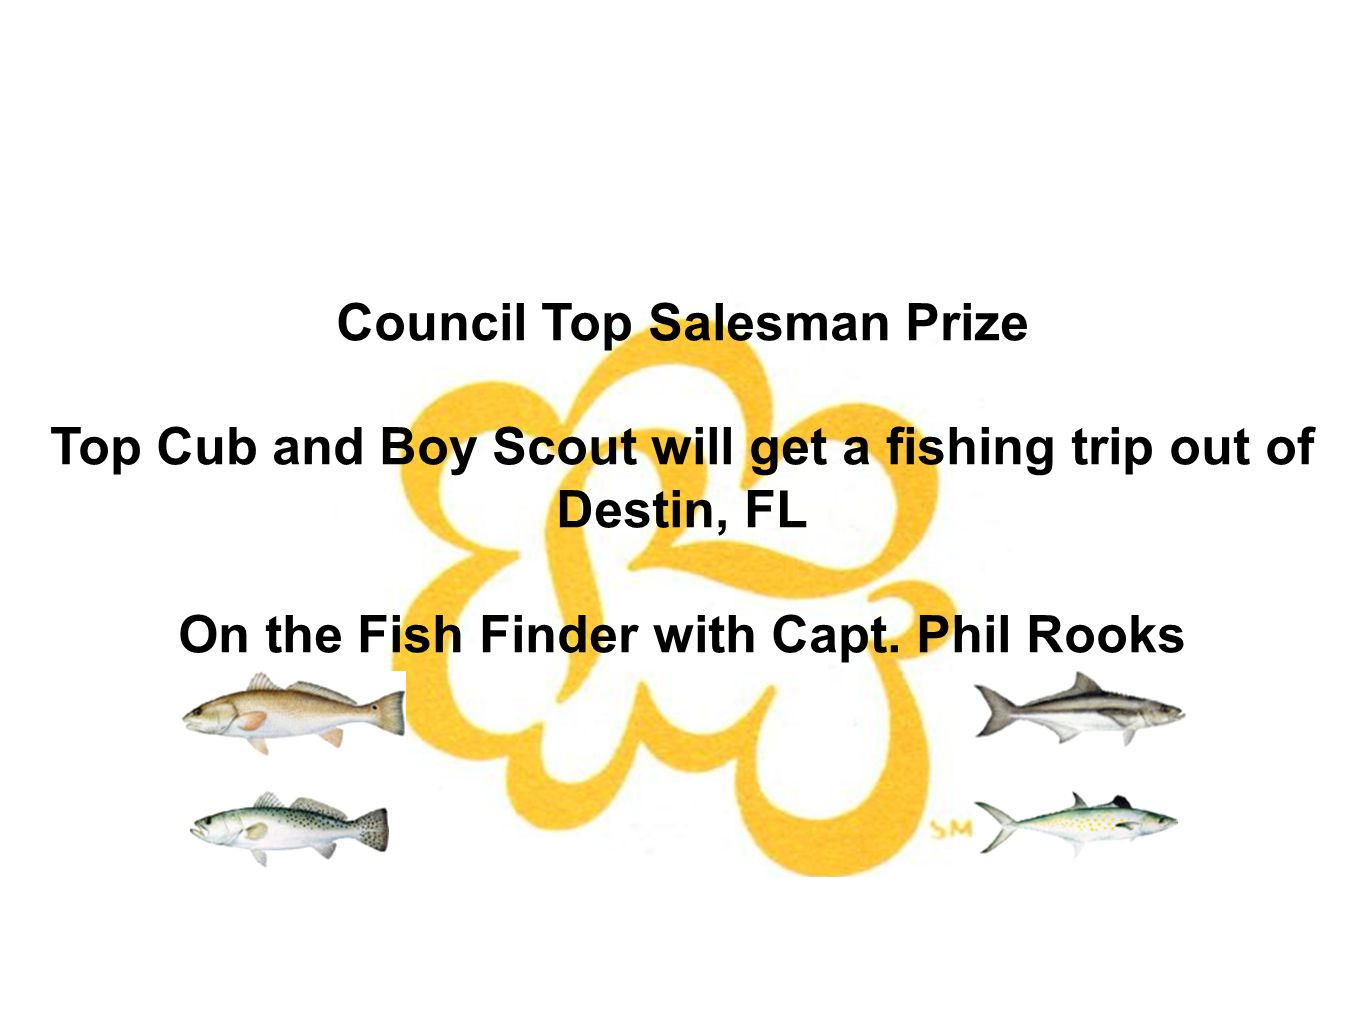 Council Top Salesman Prize Top Cub and Boy Scout will get a fishing trip out of Destin, FL On the Fish Finder with Capt.